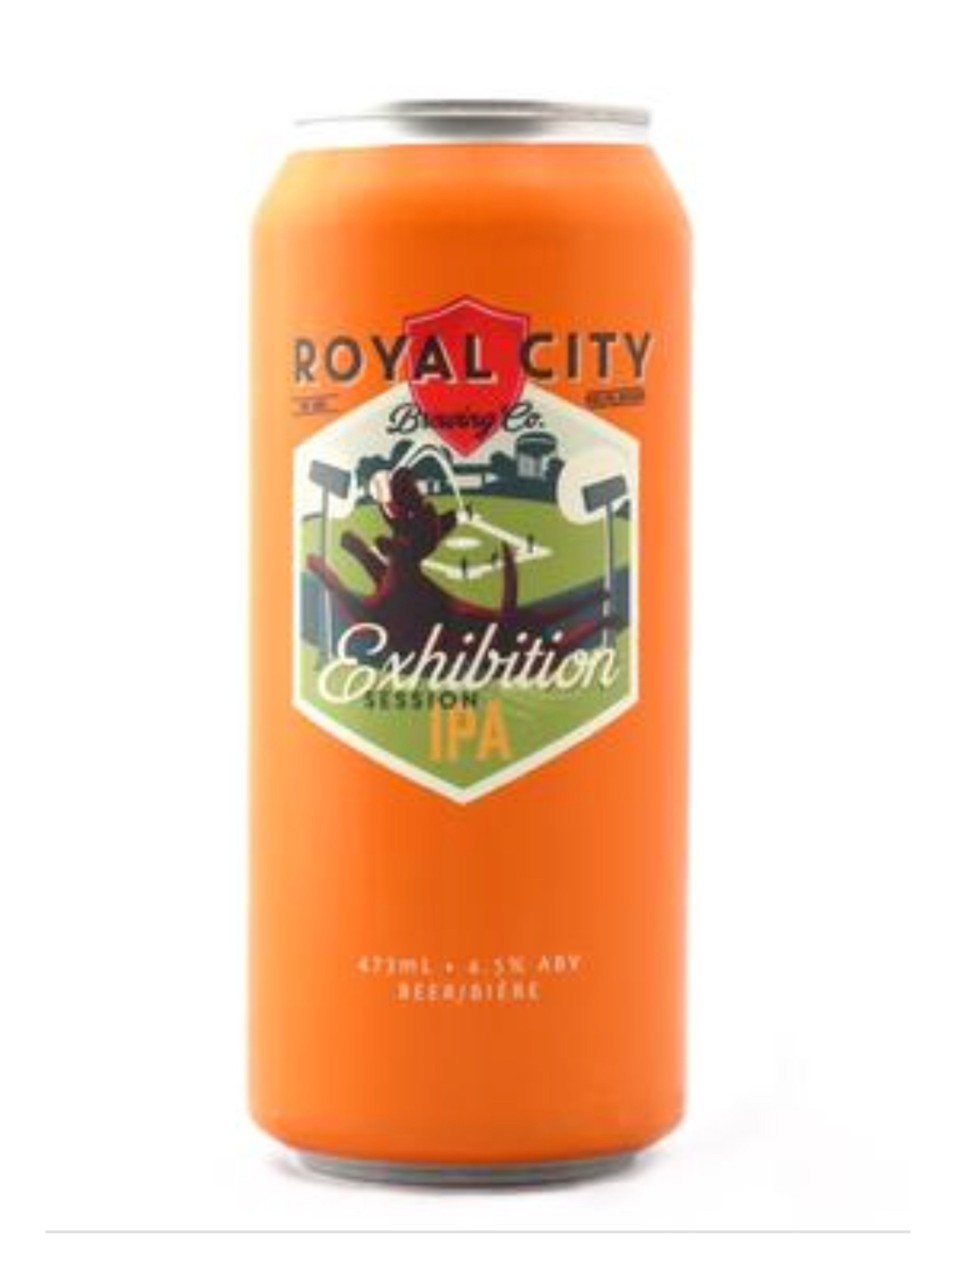 Royal City Exhibition Session IPA from LCBO